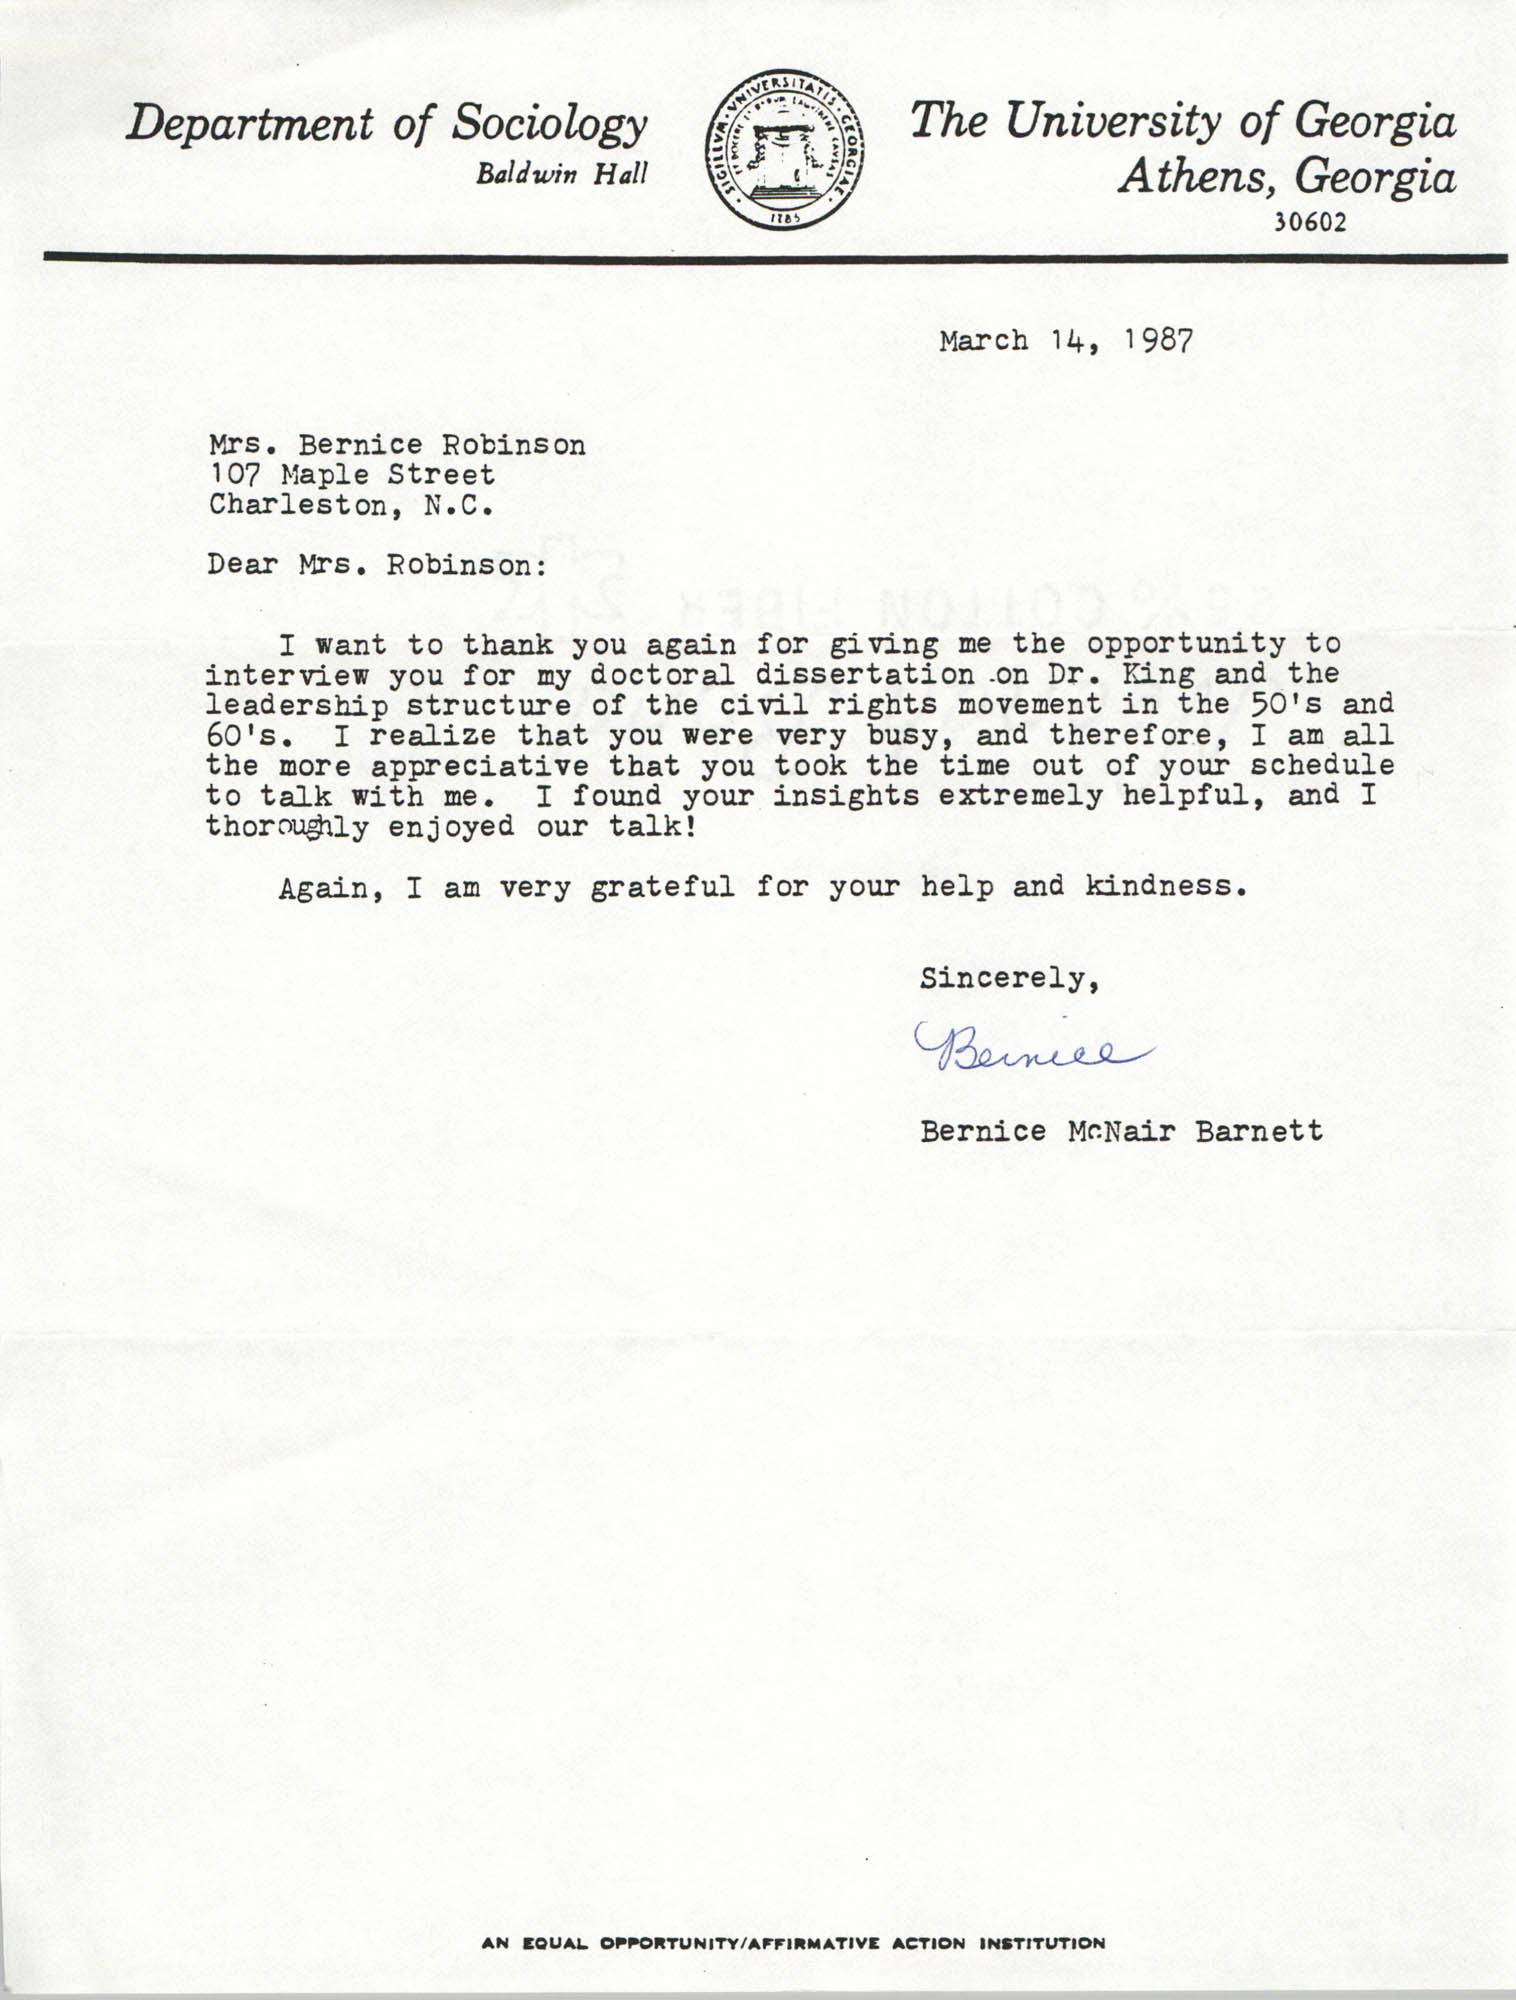 Letter from Bernice McNair Barnett to Bernice Robinson, March 14, 1987